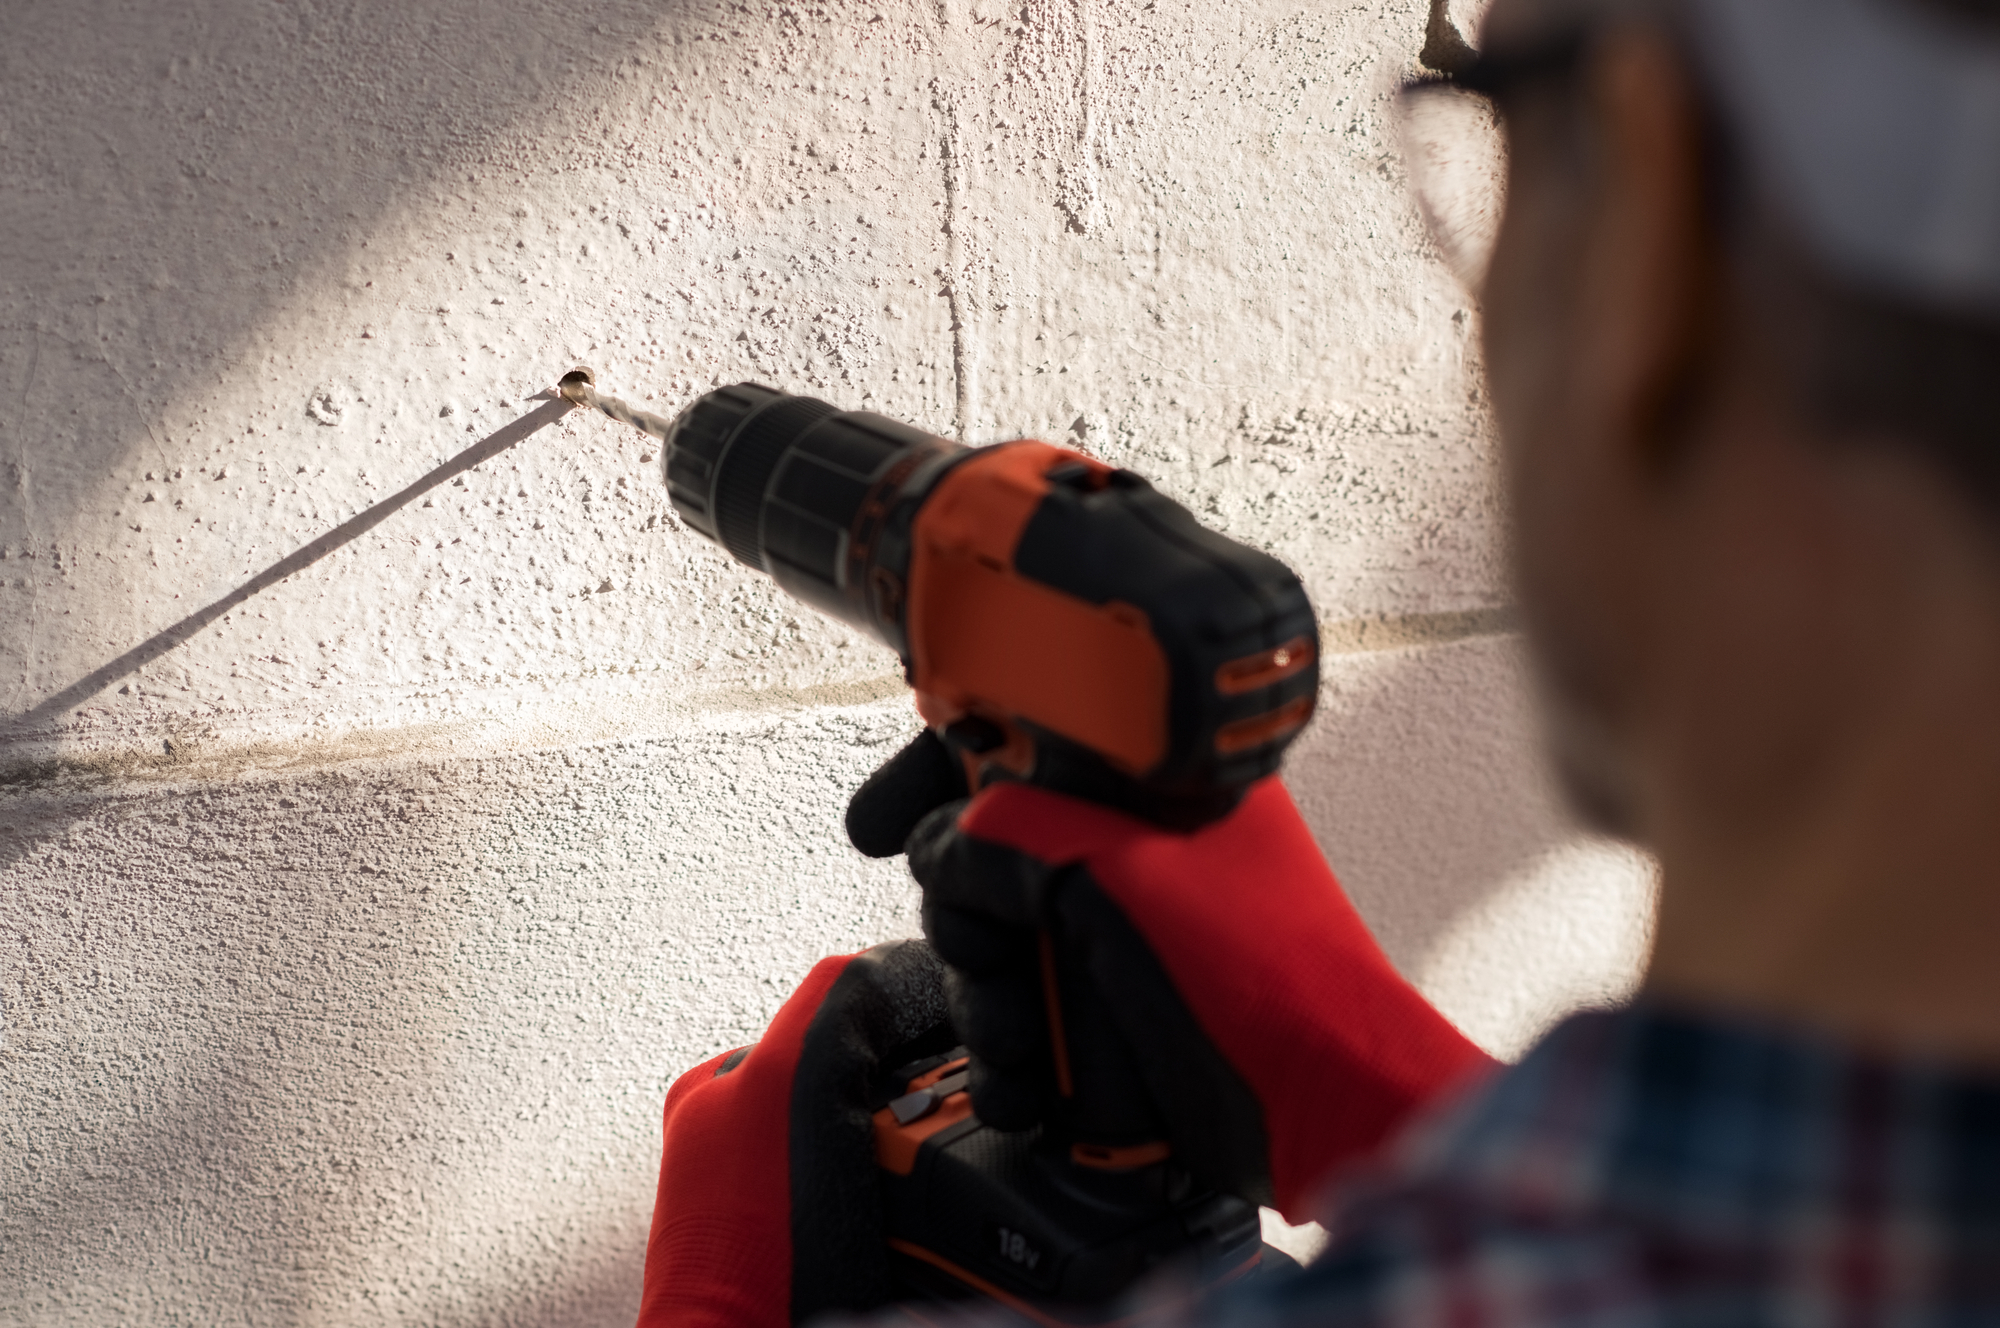 Drilling on Wall